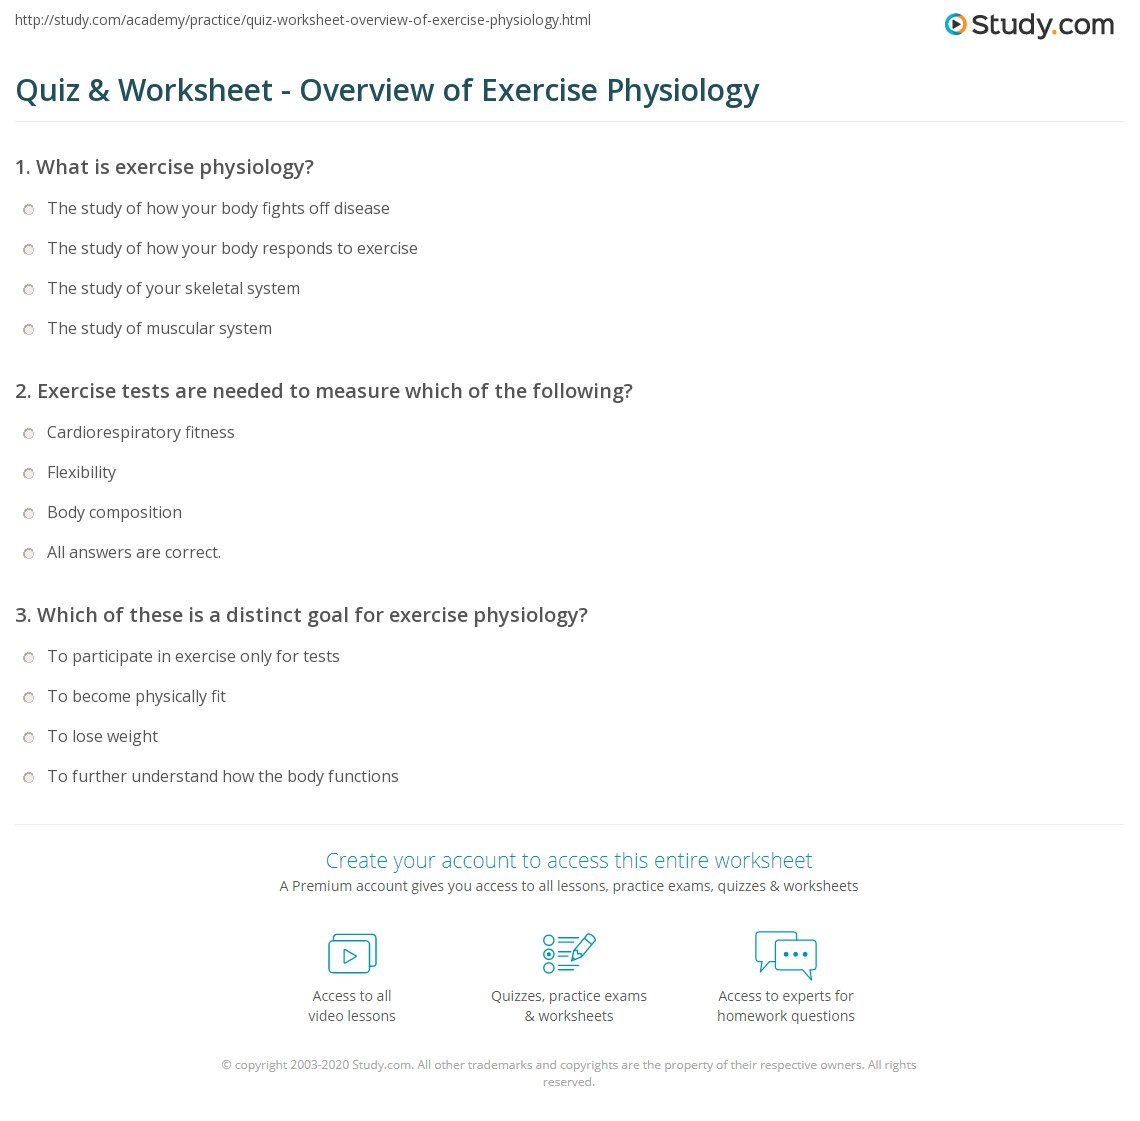 Quiz & Worksheet - Overview of Exercise Physiology | Study.com